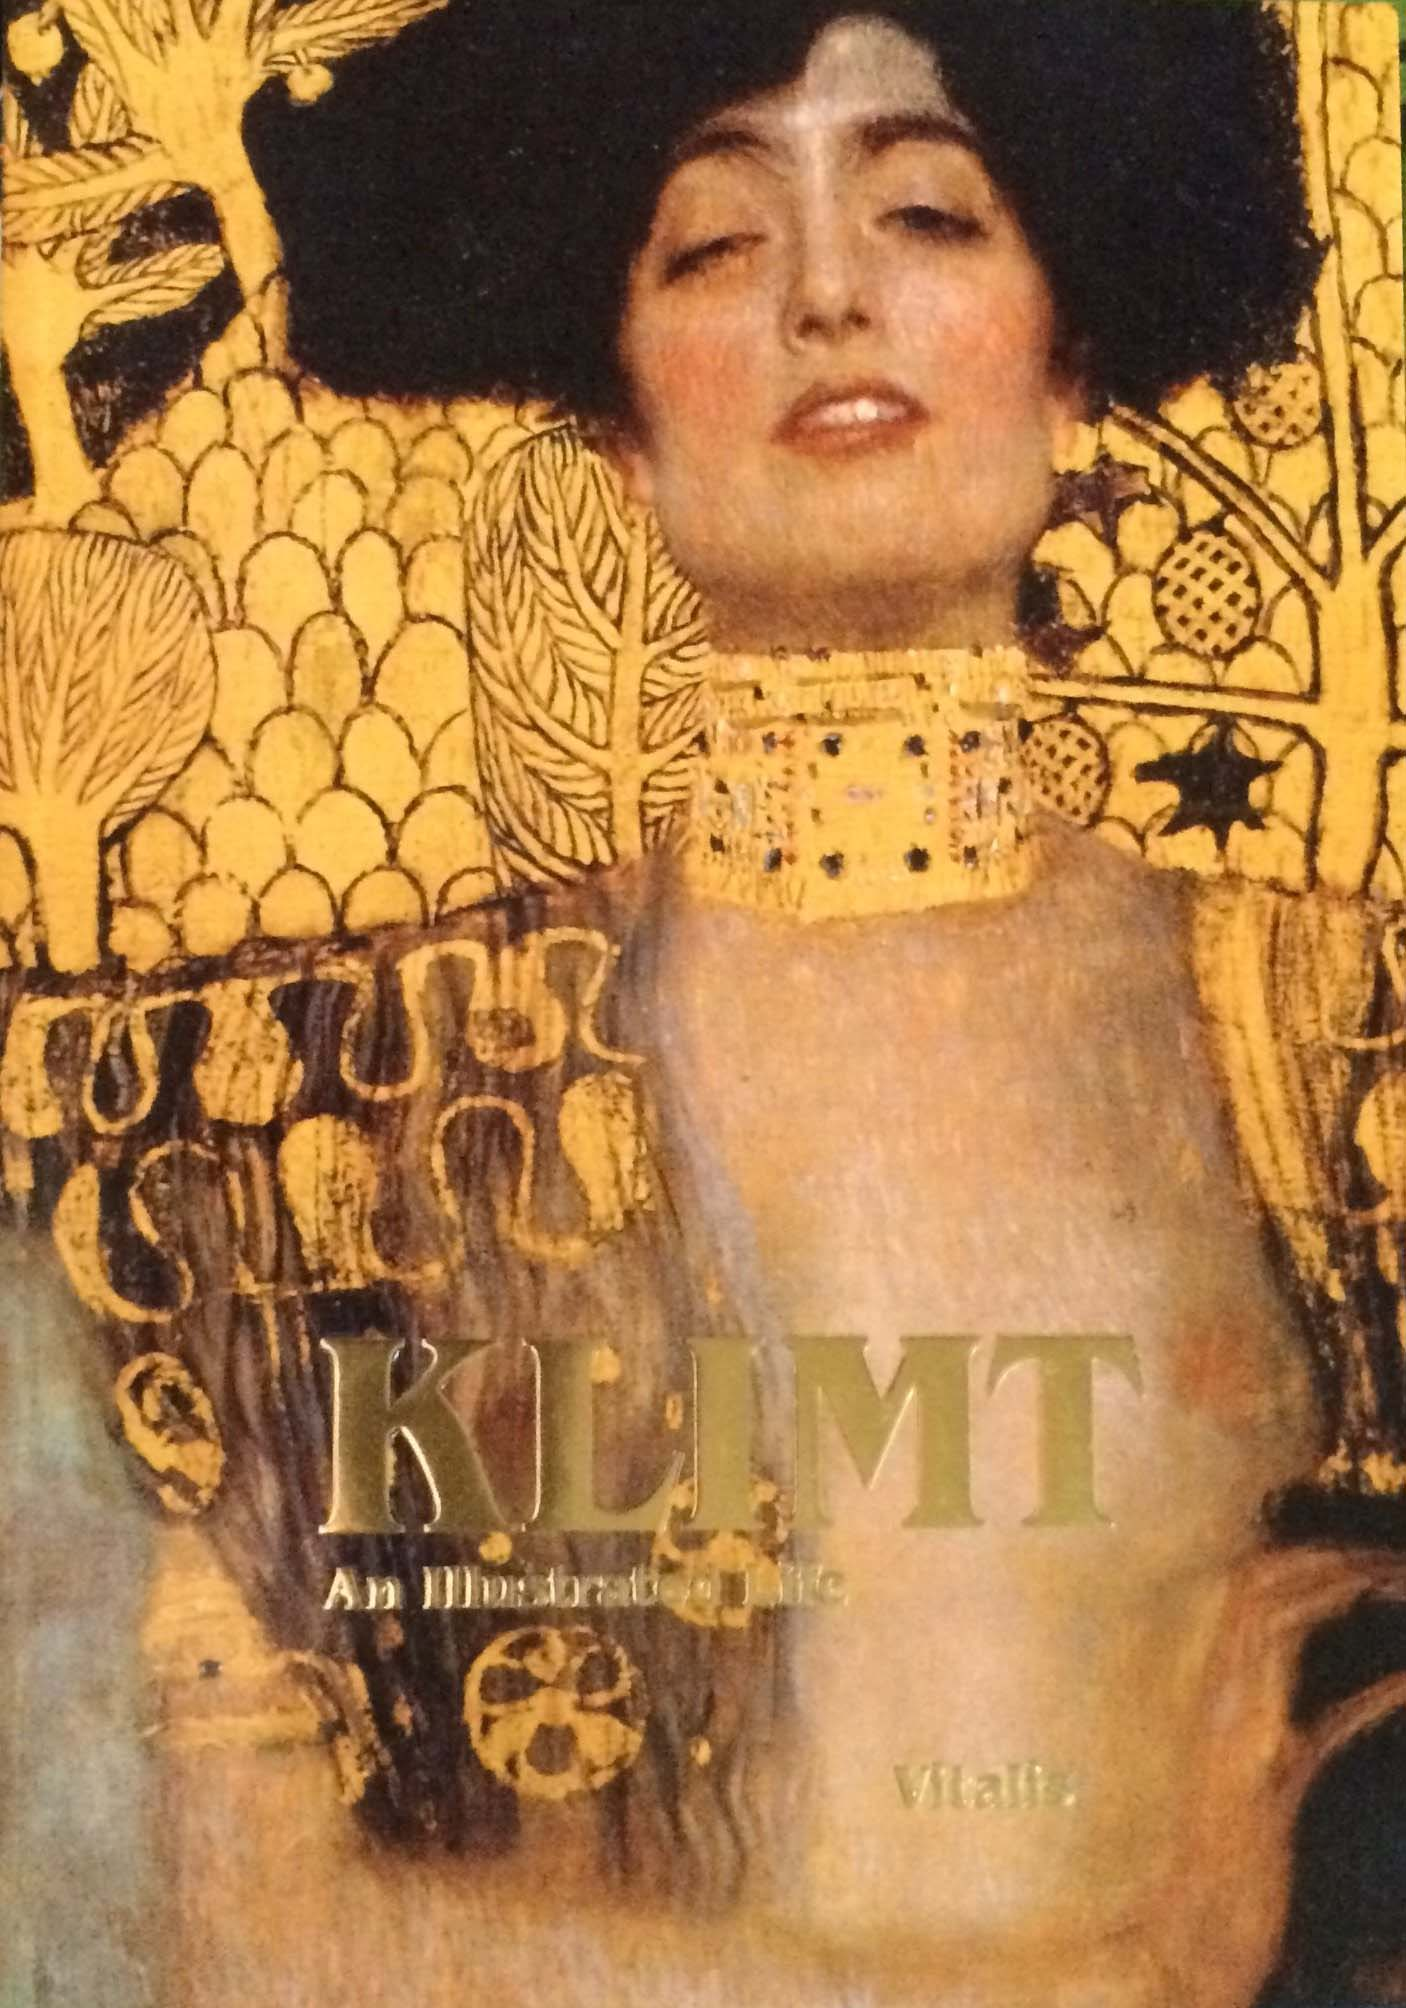   Klimt – An Illustrated Life